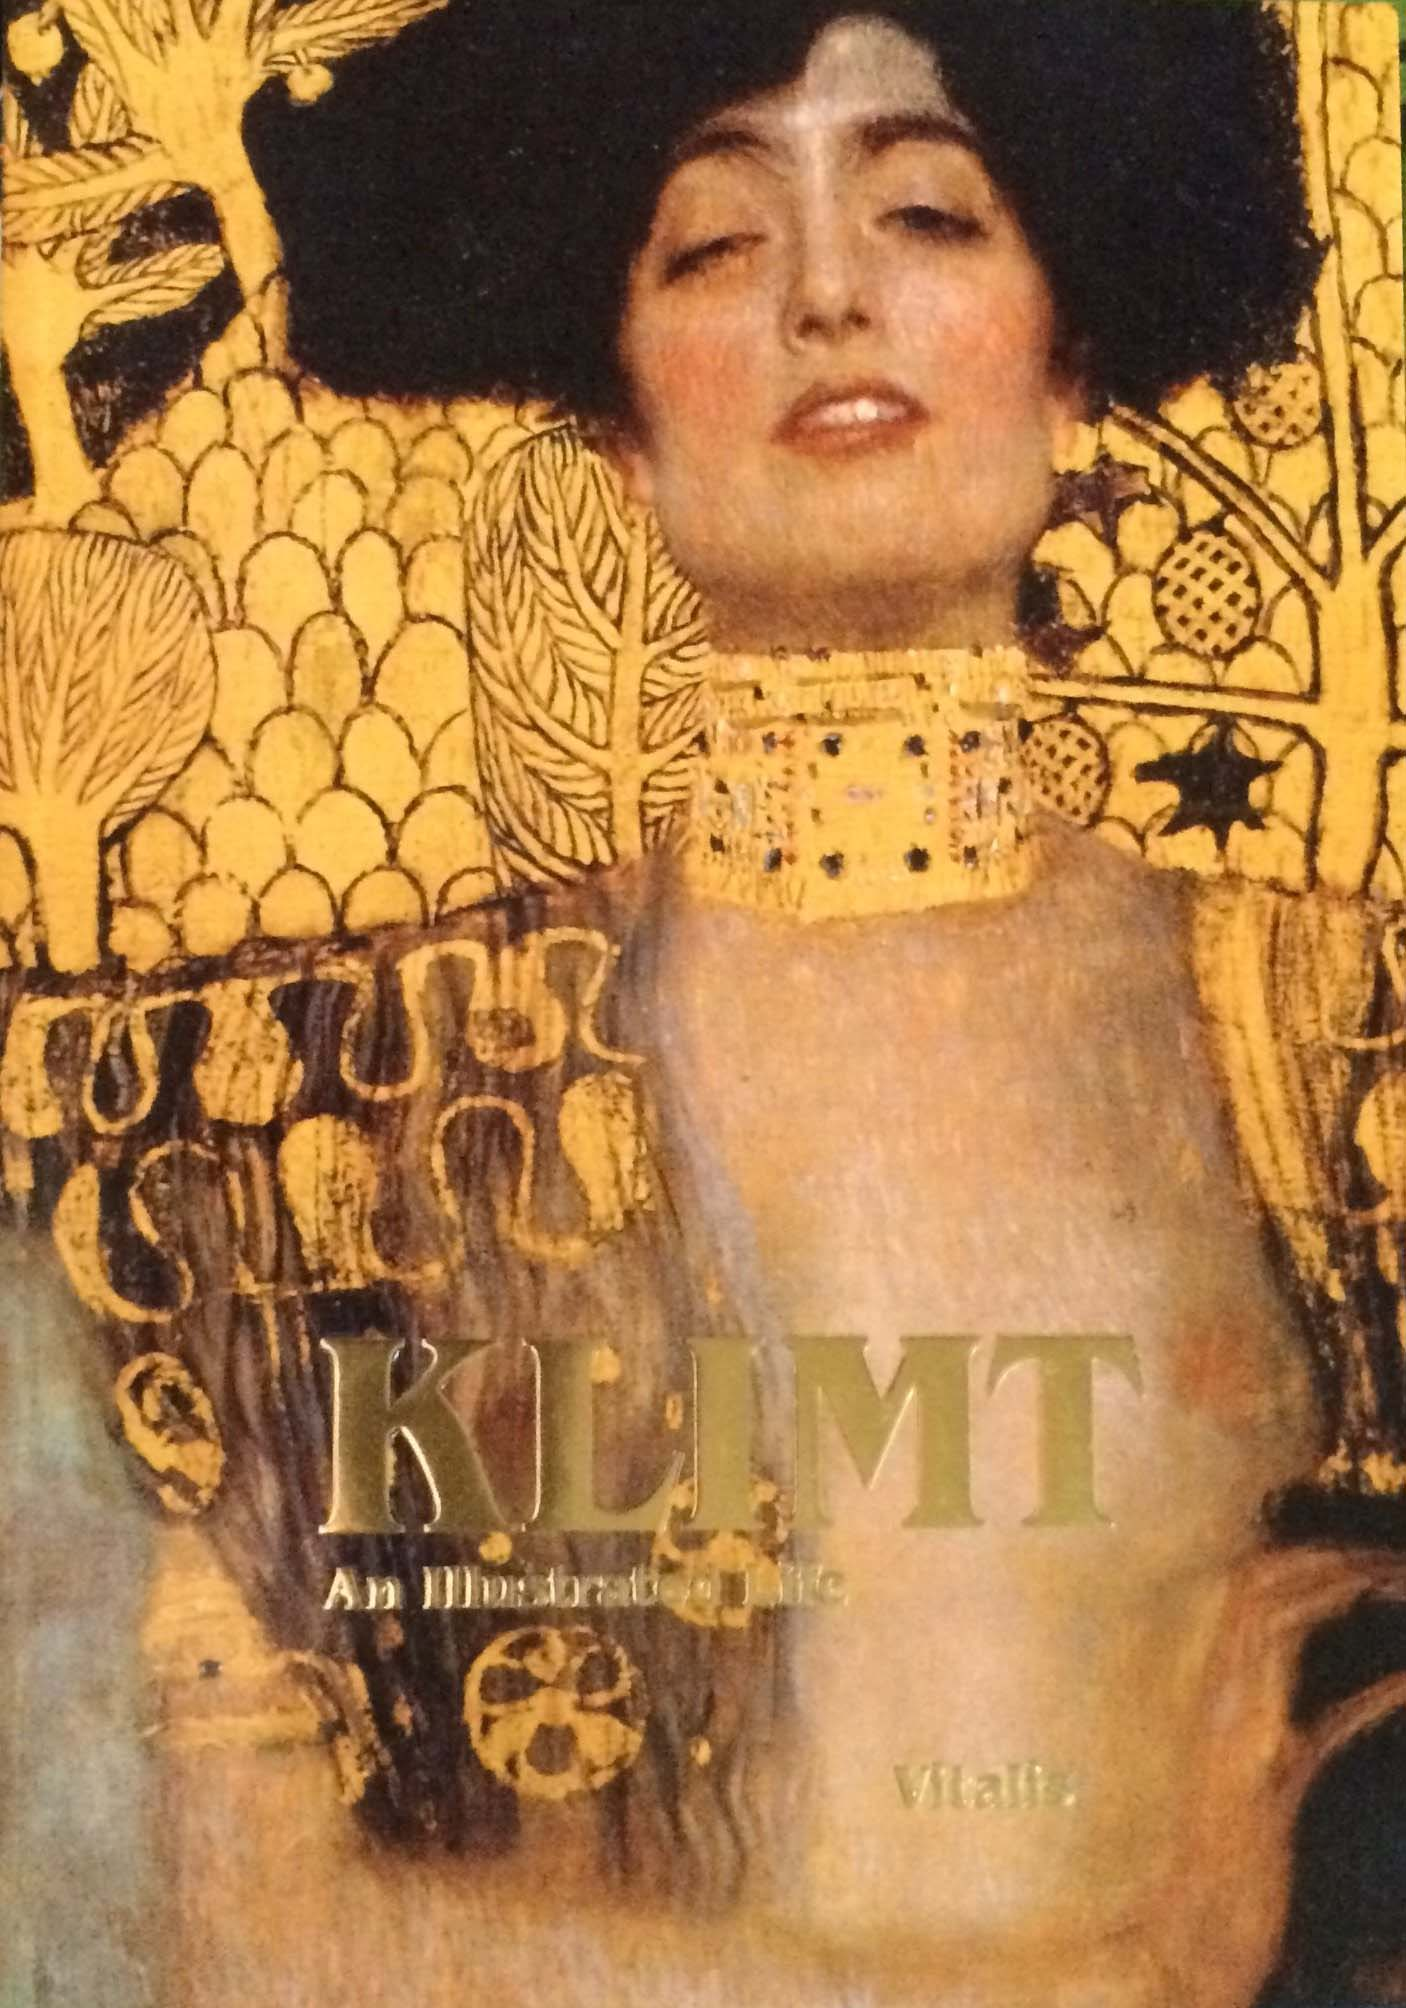   Klimt – An Illustrated Life